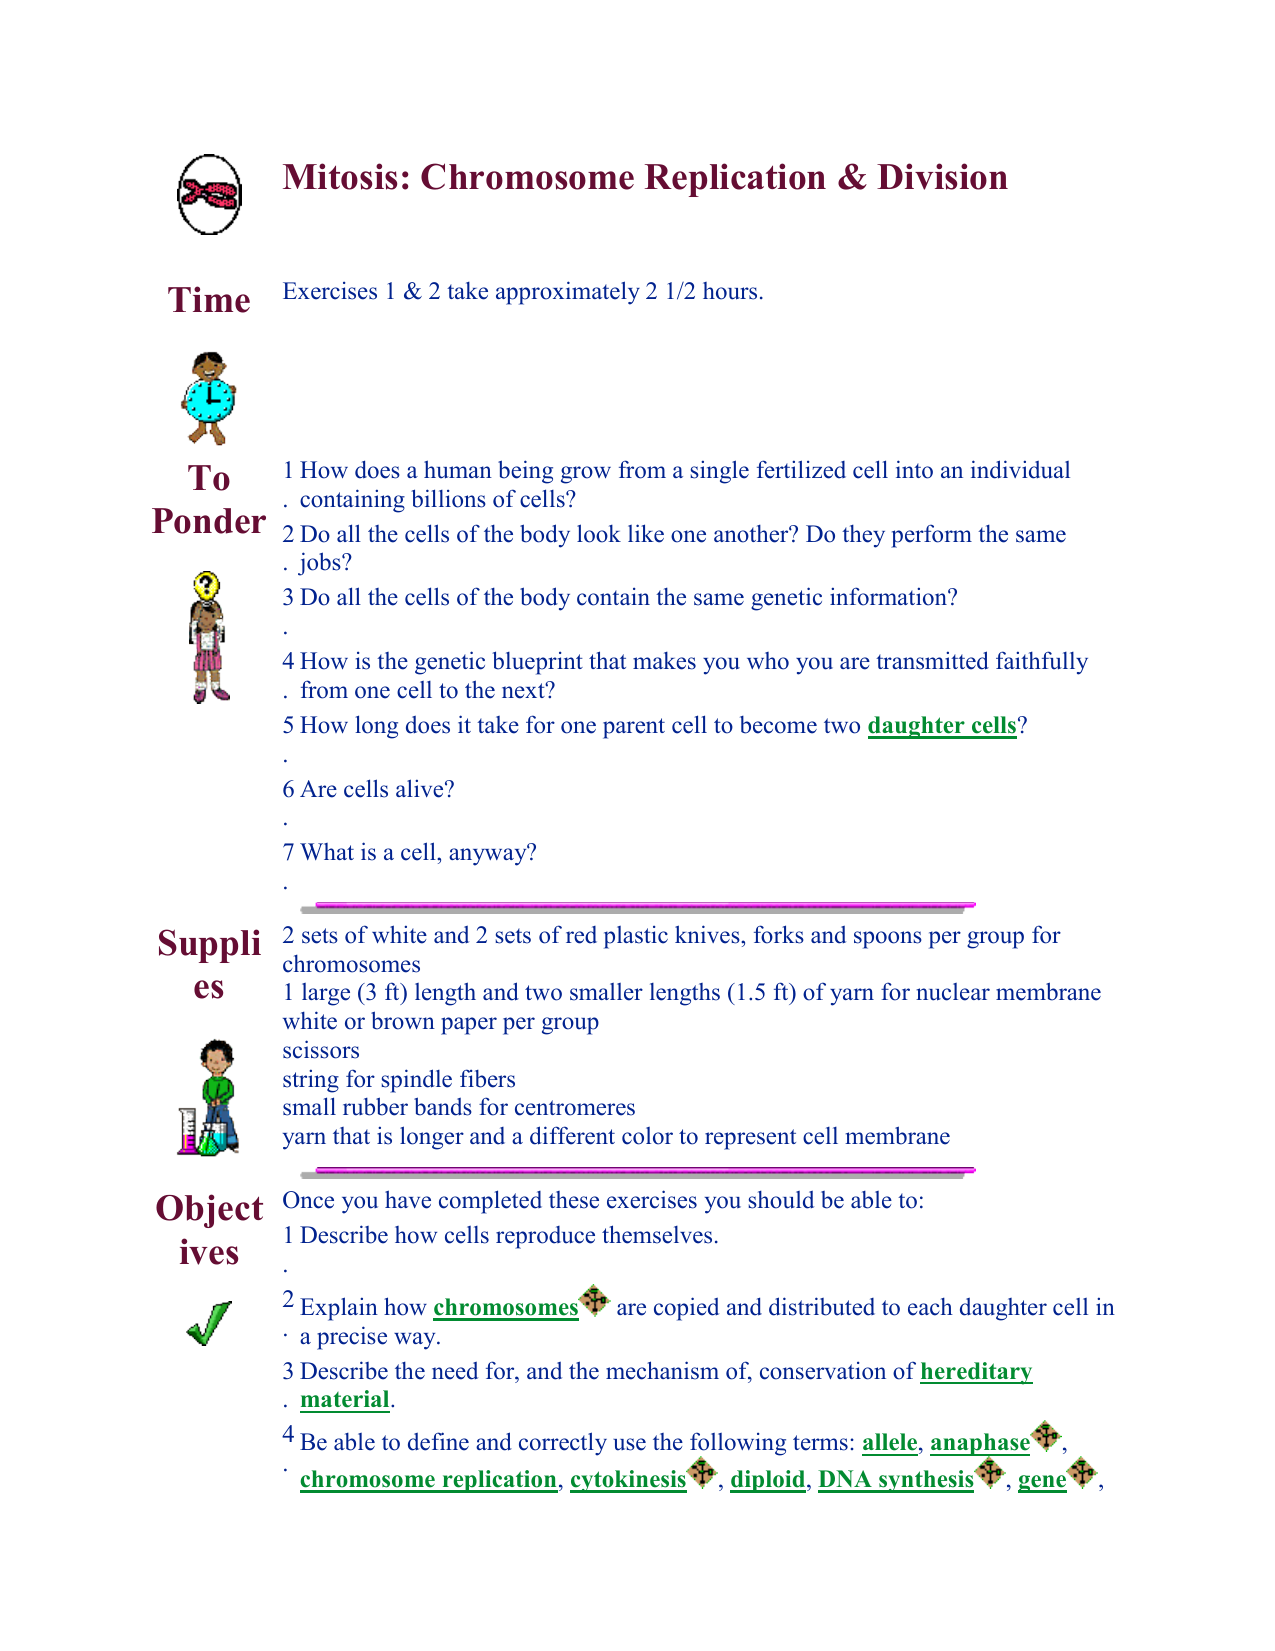 Worksheets Cells Alive Worksheet Answers 100 cells alive cell cycle worksheet answers eukaryotic chapter 10 growth and division vocabulary review